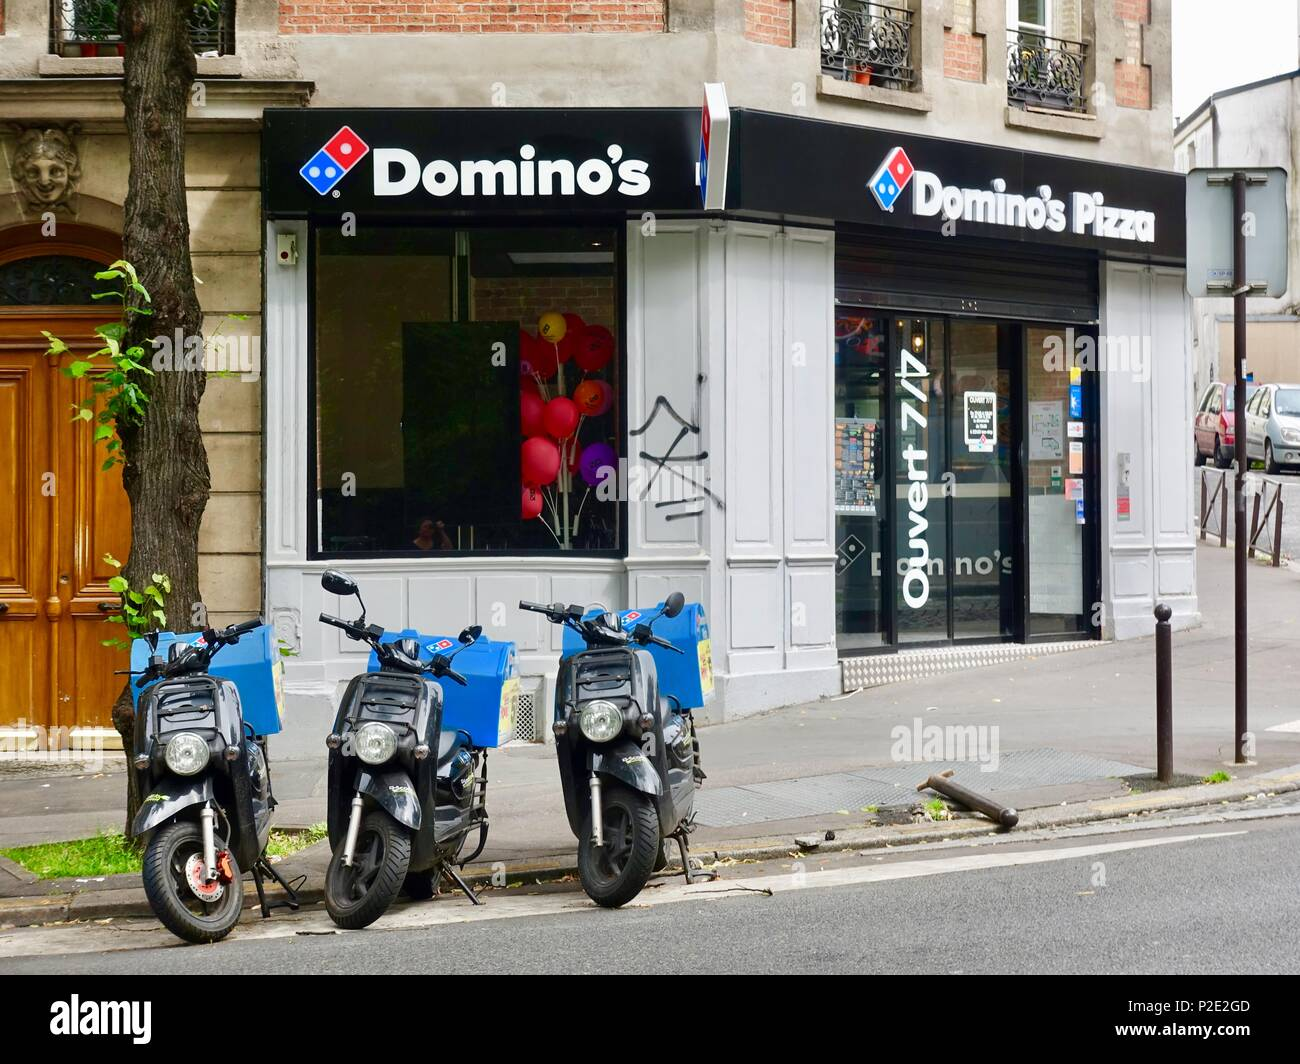 dominos pizza delivery stock photos dominos pizza delivery stock images alamy. Black Bedroom Furniture Sets. Home Design Ideas